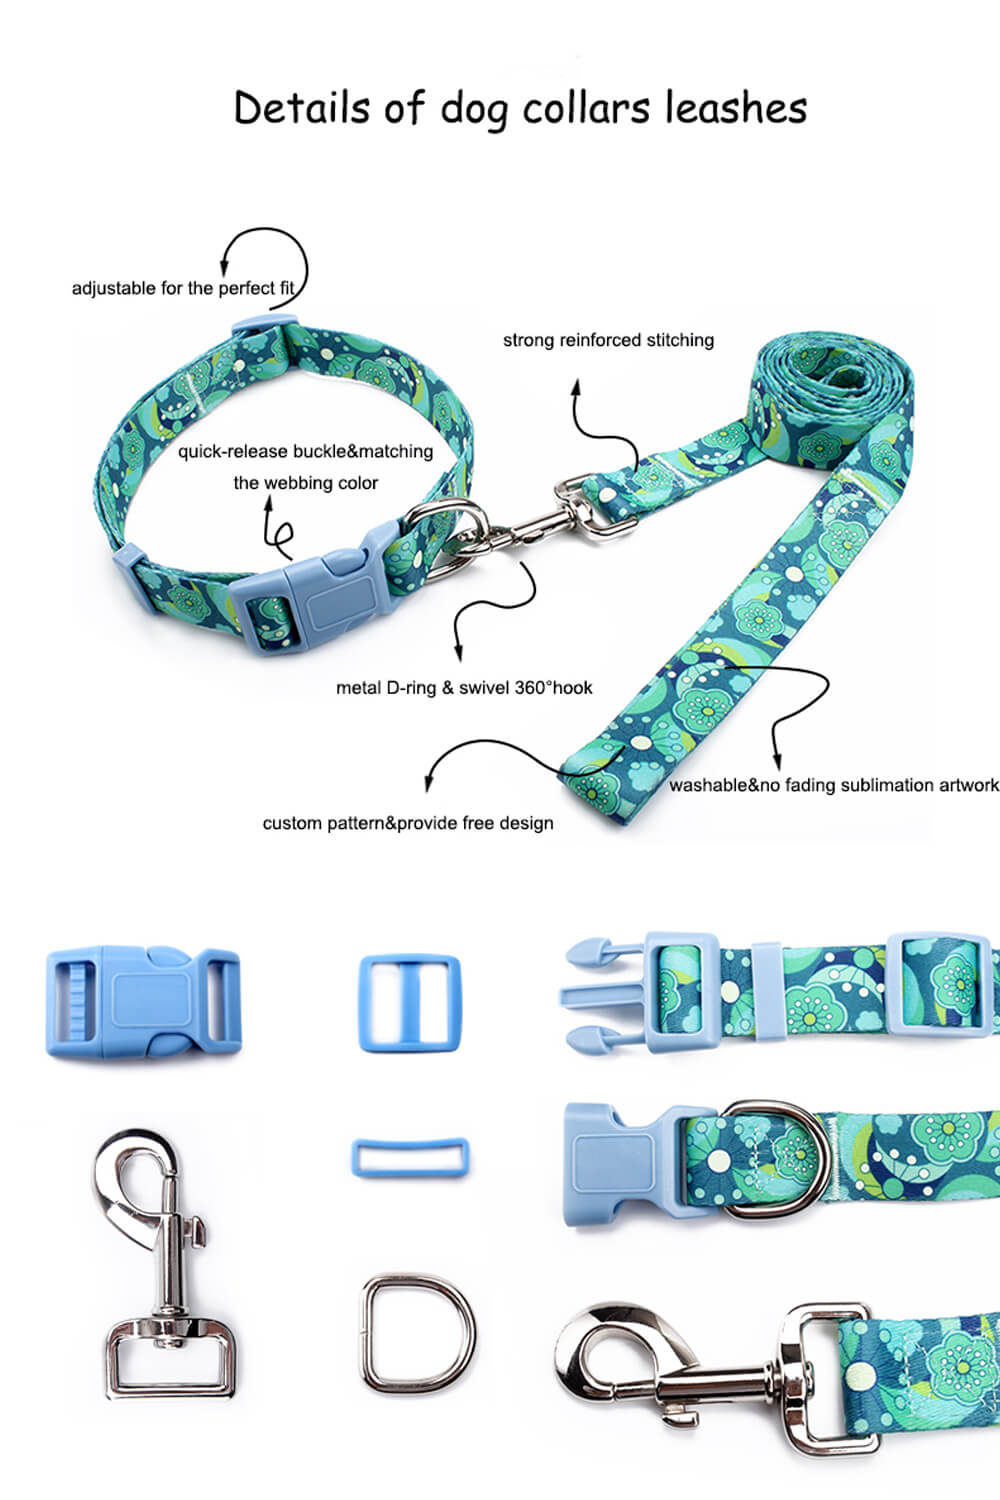 details-of-dog-collars-leashes-qqpets.jpg